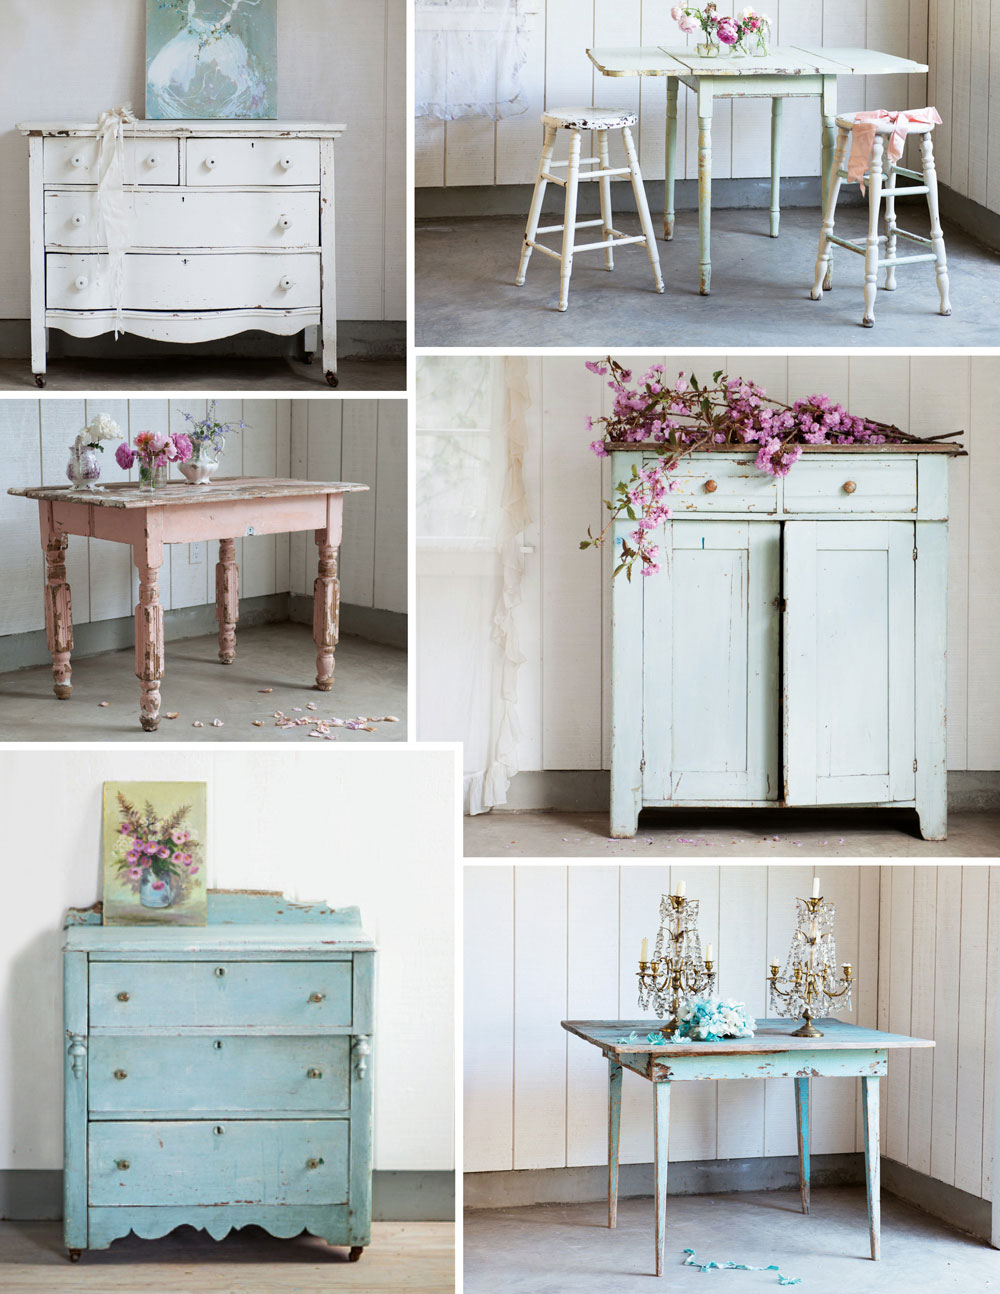 Rachel Ashwell The World of Shabby Chic book